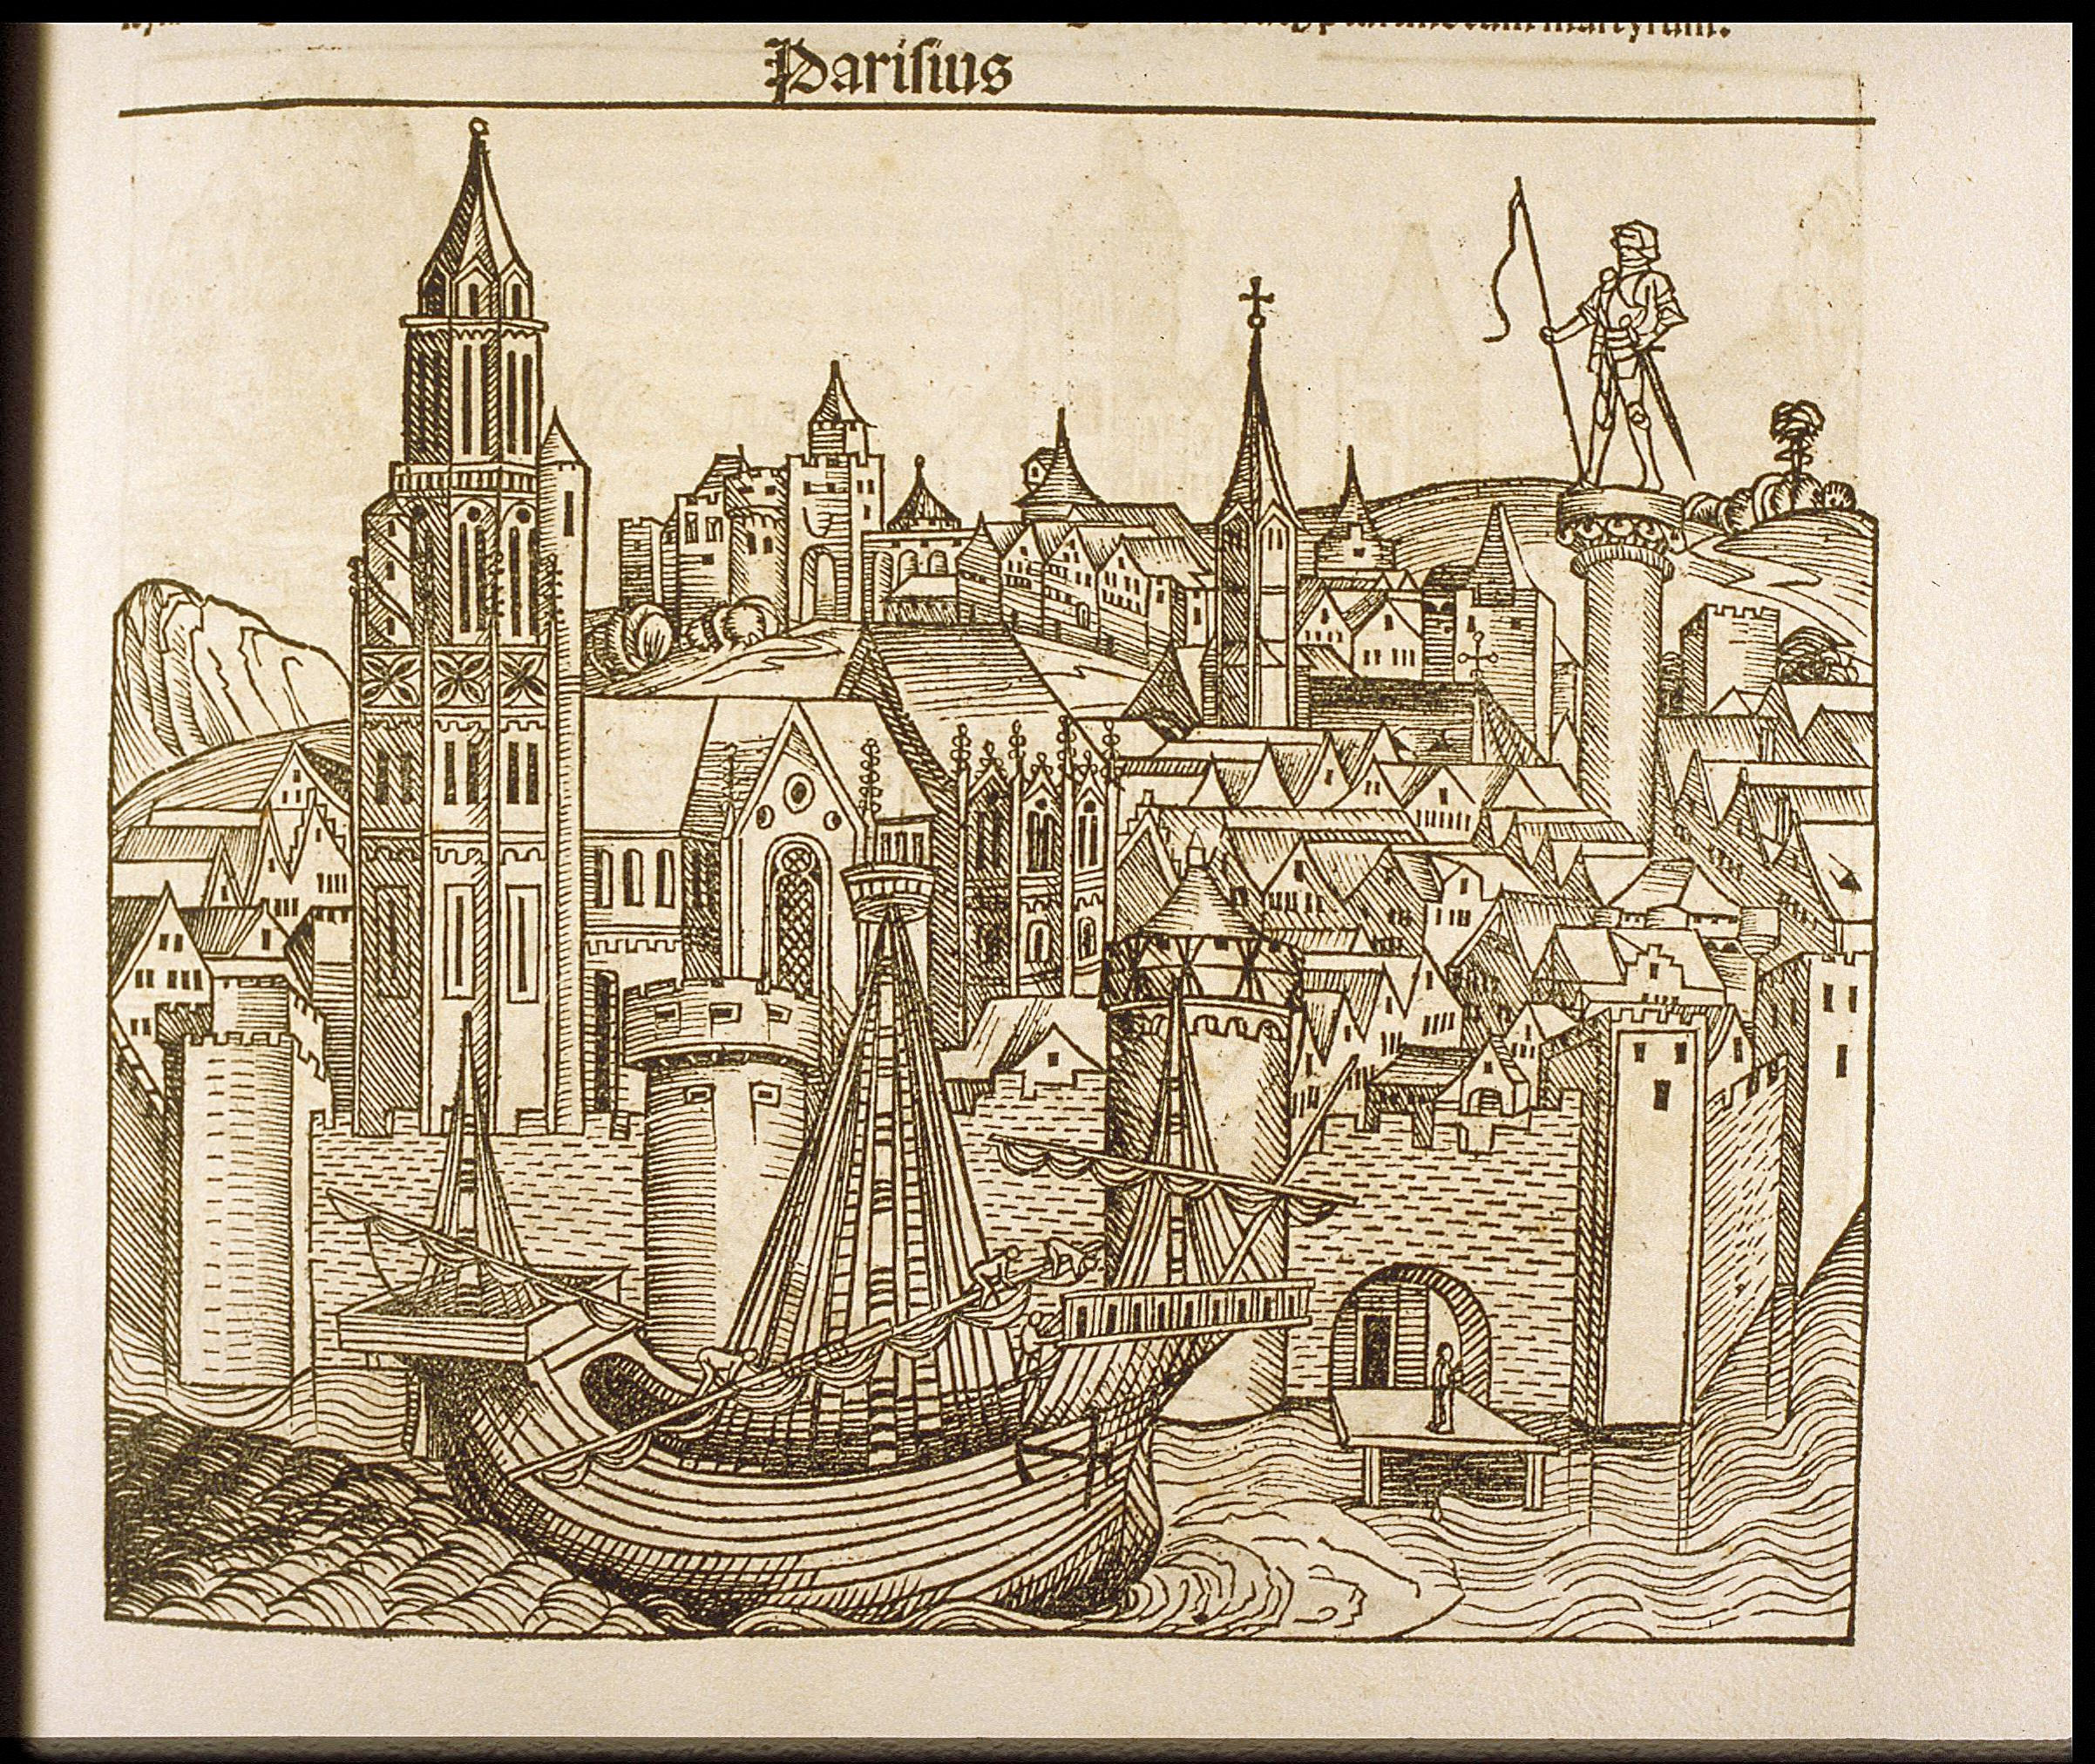 File:Parisius (from the Nuremberg Chronicle), ca. 1493 - Cornell University